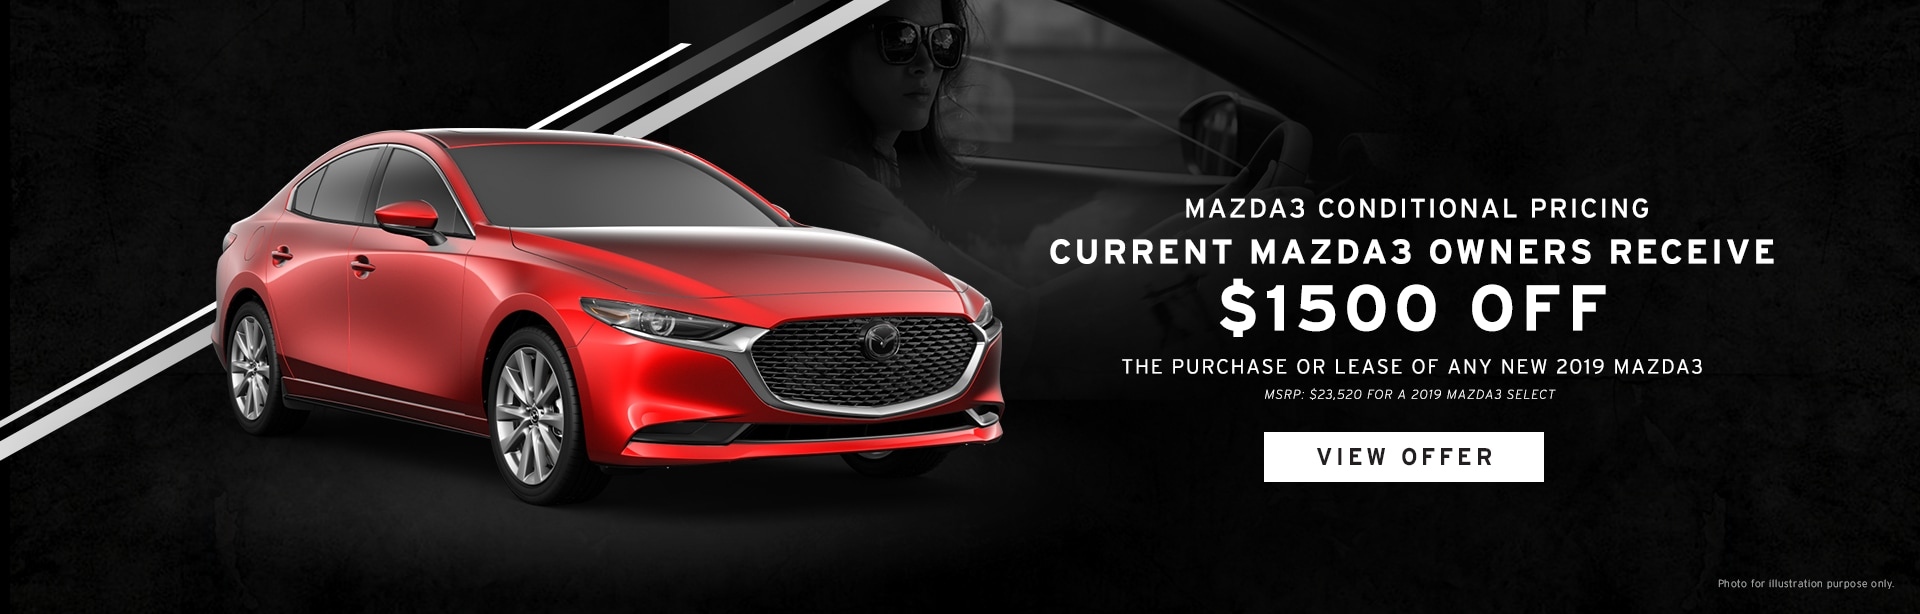 Mazda Dealership Near Me >> New And Used Mazda Dealership In Kansas City Premier Mazda Mazda